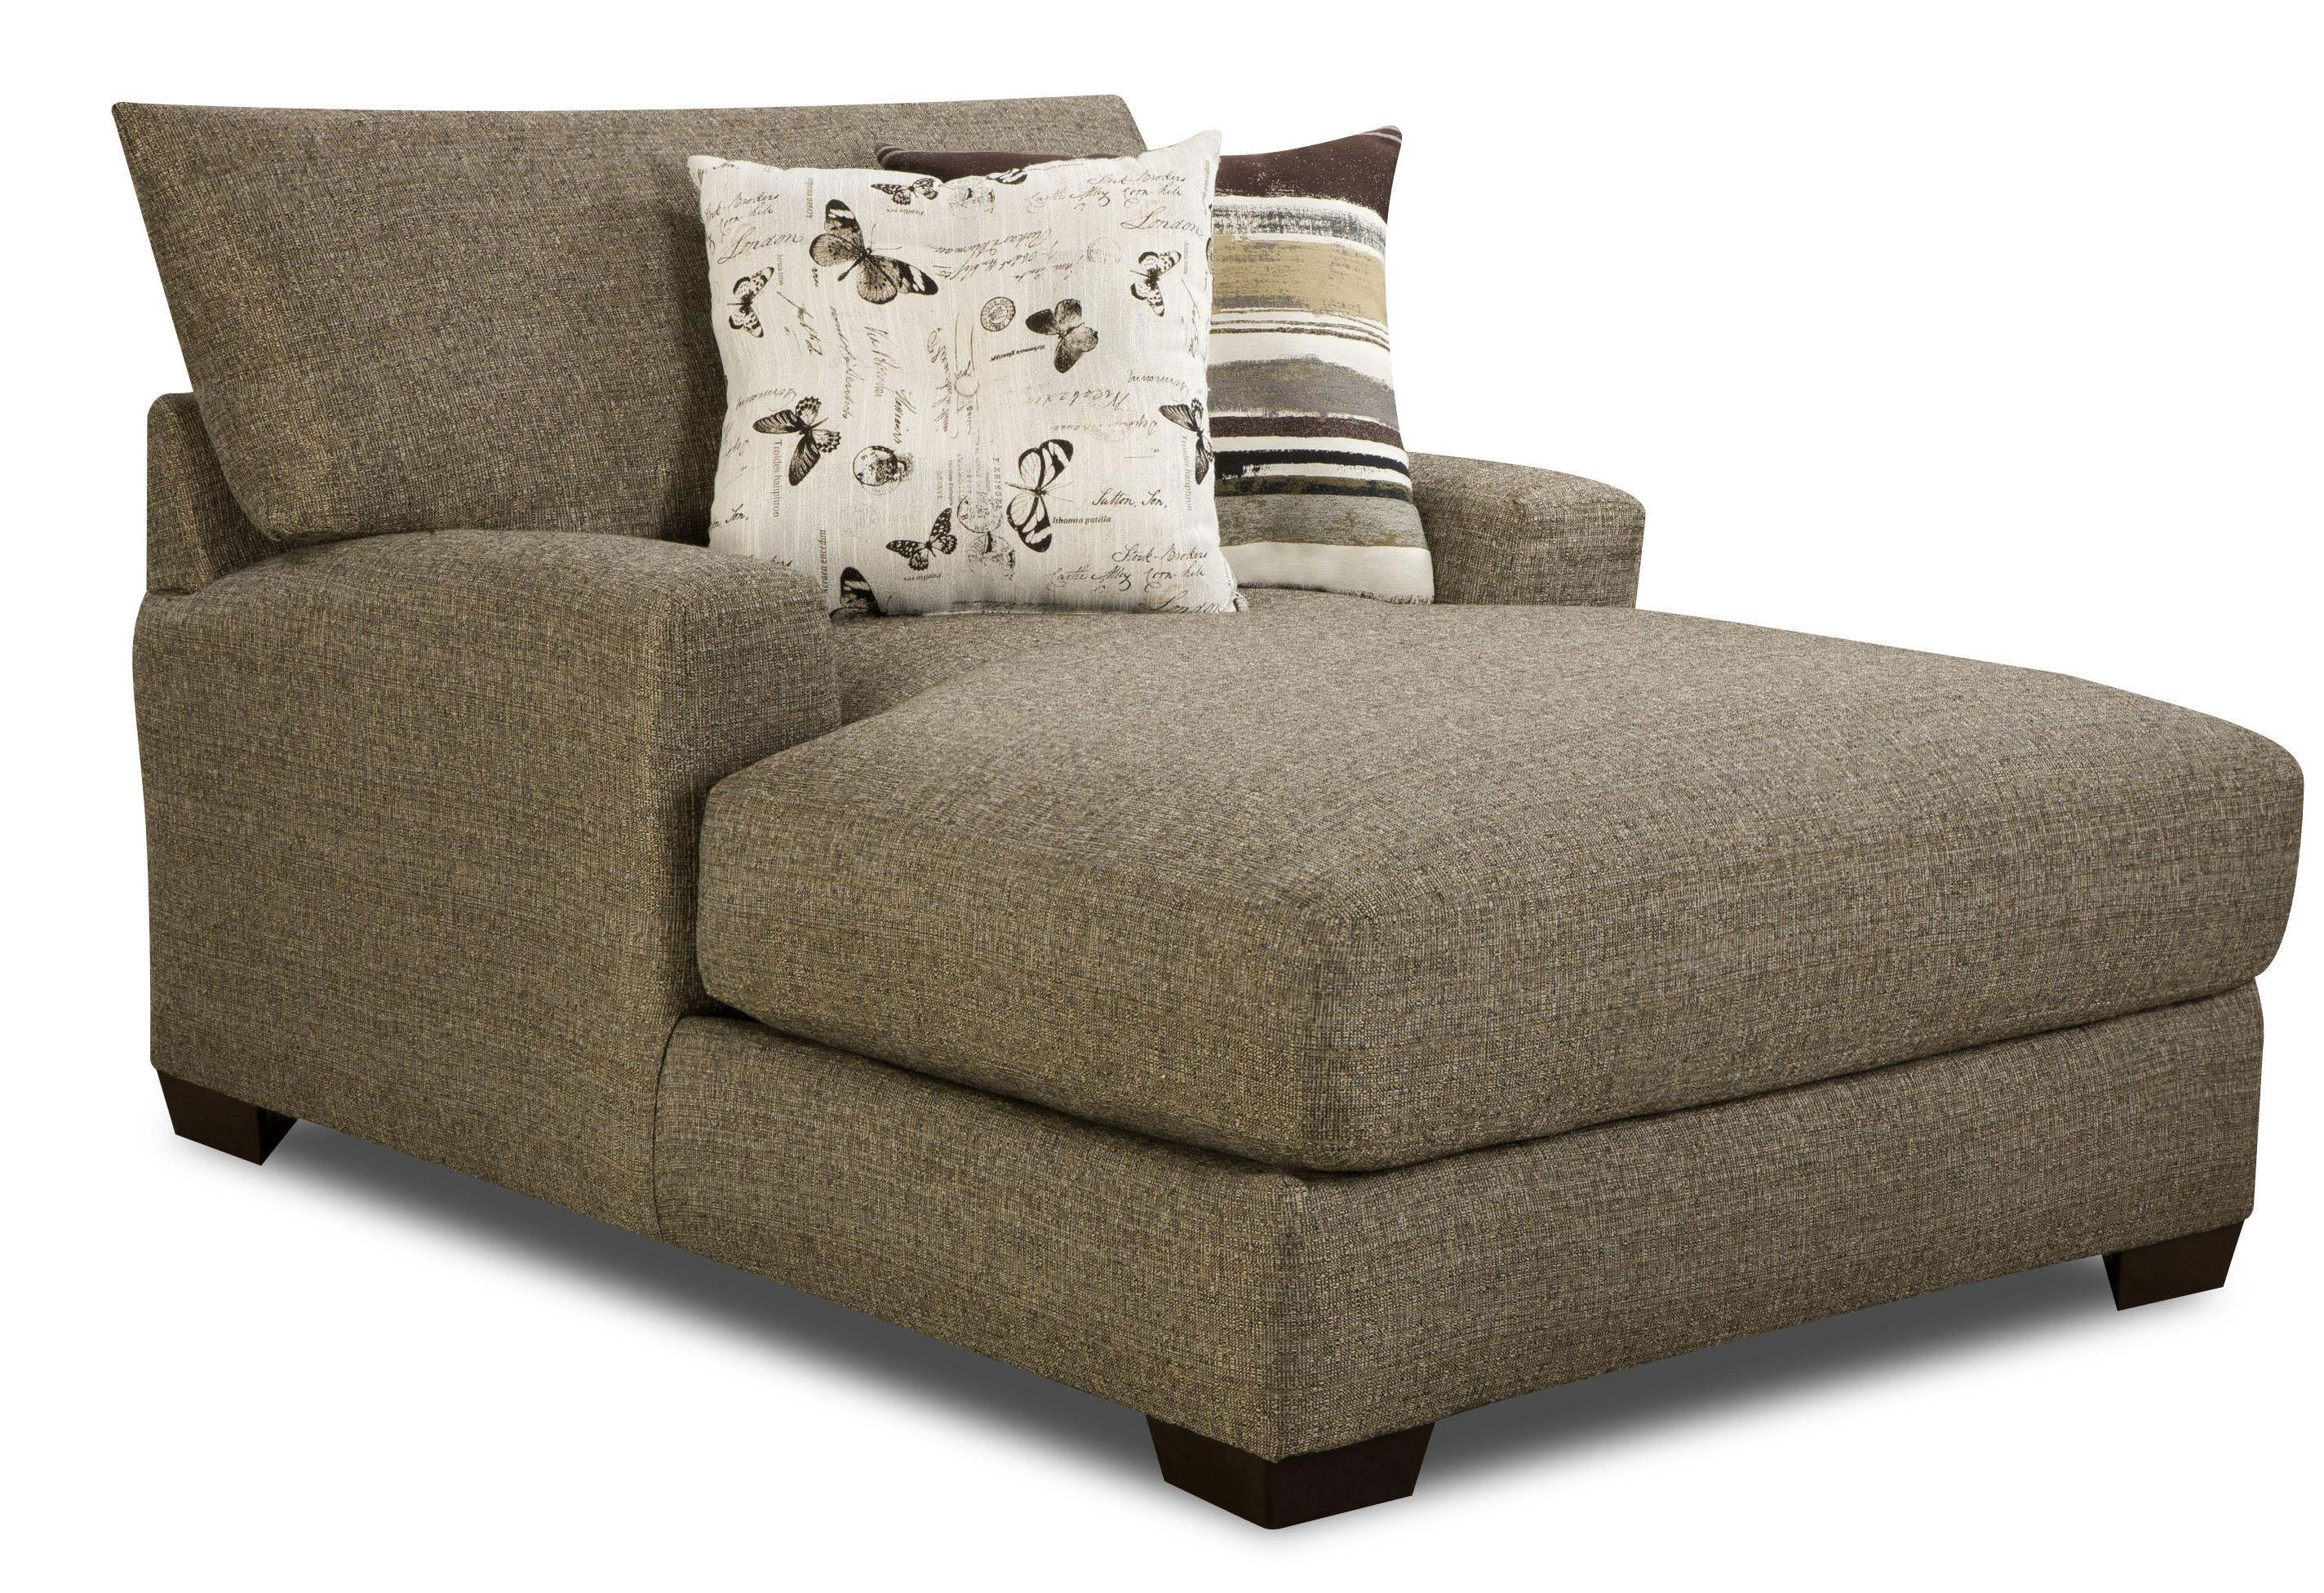 Sofas Center : Double Chaise Sofa Lounge Down Sectional Chair Throughout Chaise Sofa Chairs (View 3 of 20)